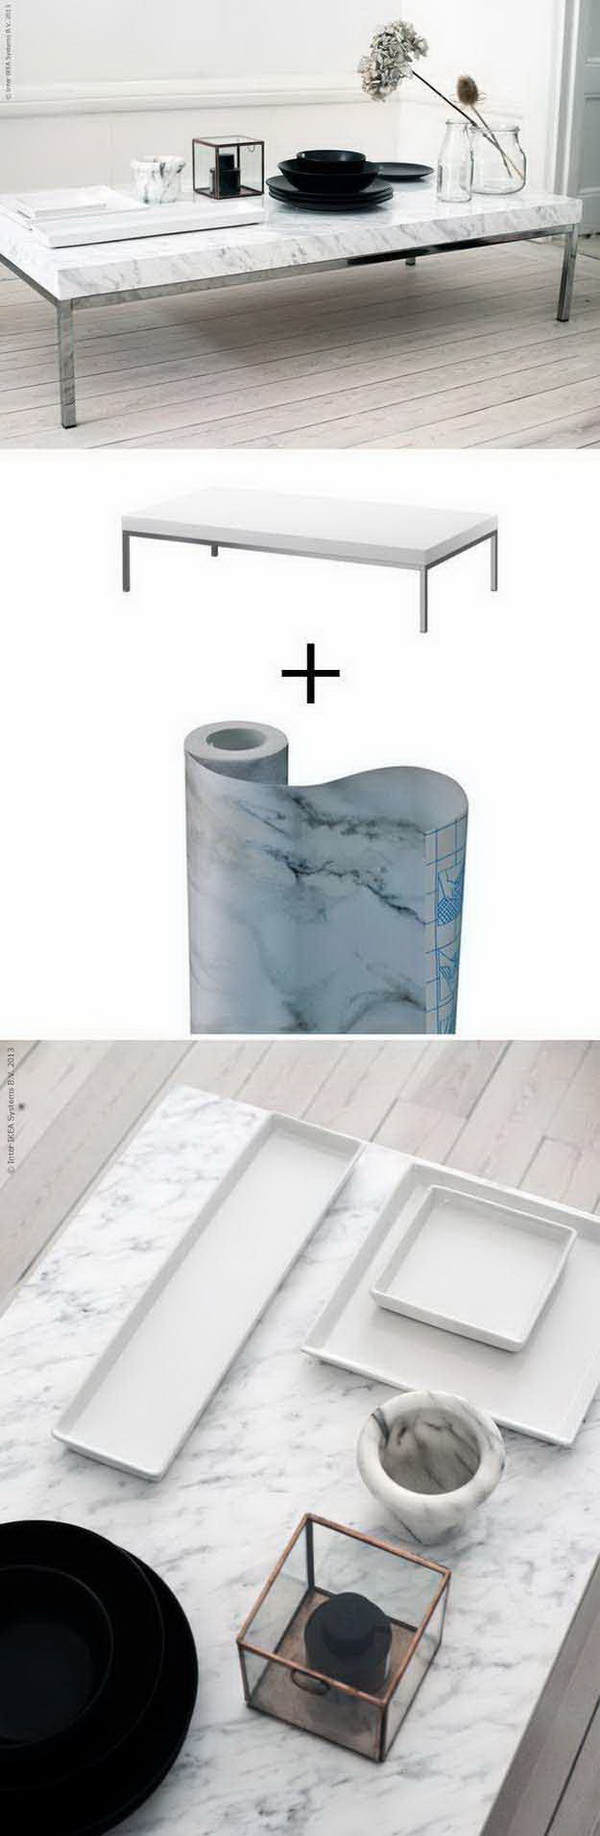 DIY Faux Marble Coffee Table. Marble-topped tables give a room a special elegance. Learn how to transfer an old wood coffee table into a gorgeous, expensive-looking marble accent piece.